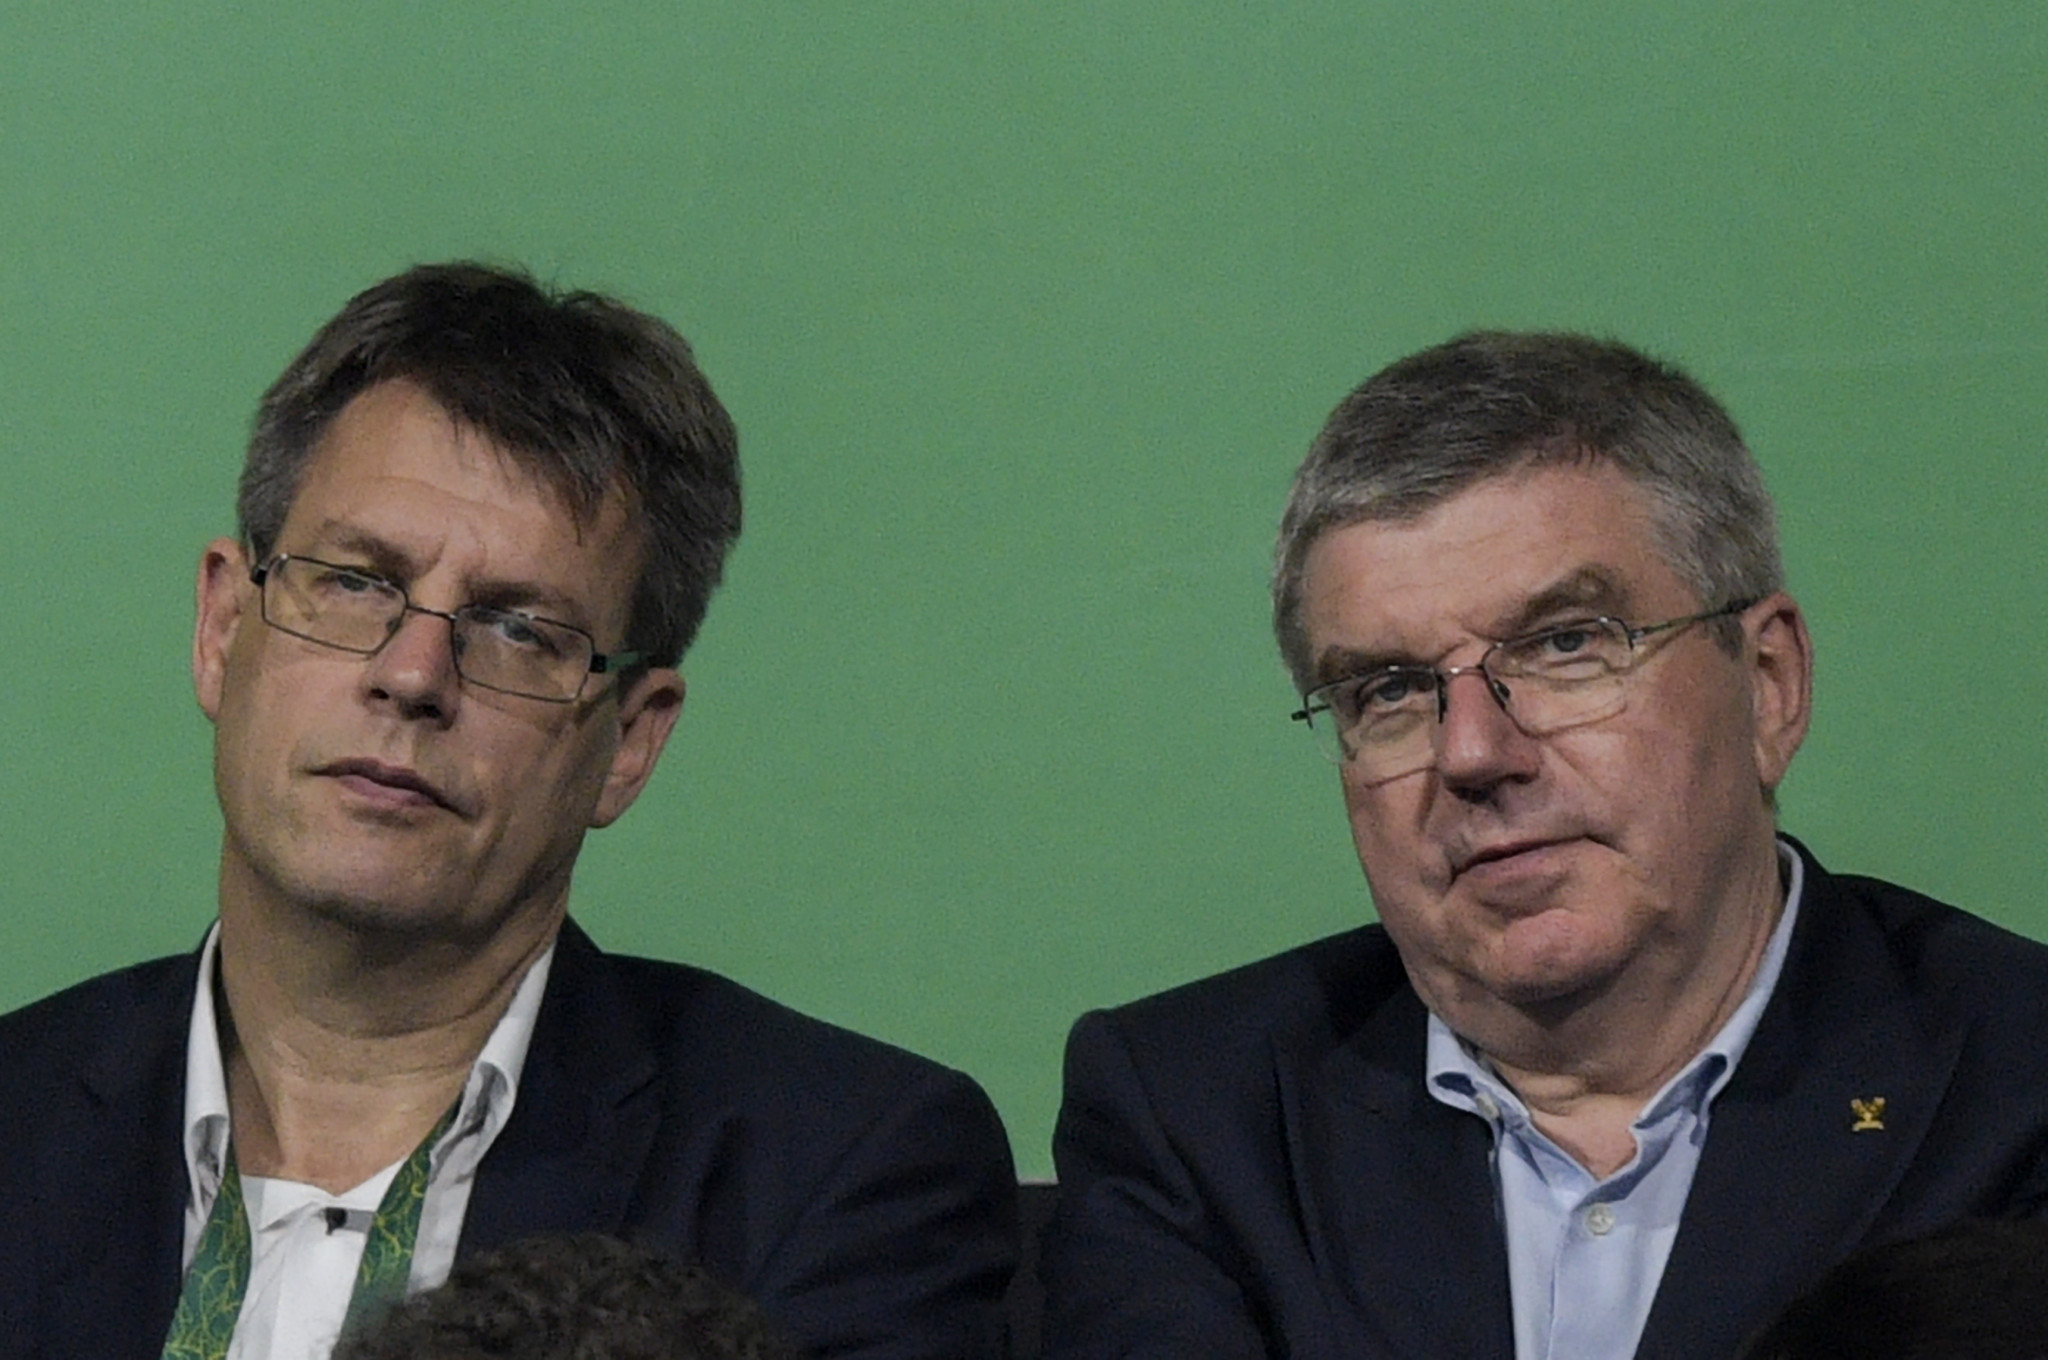 ITTF President Thomas Weikert, left, will seek re-election at the AGM ©Getty Images